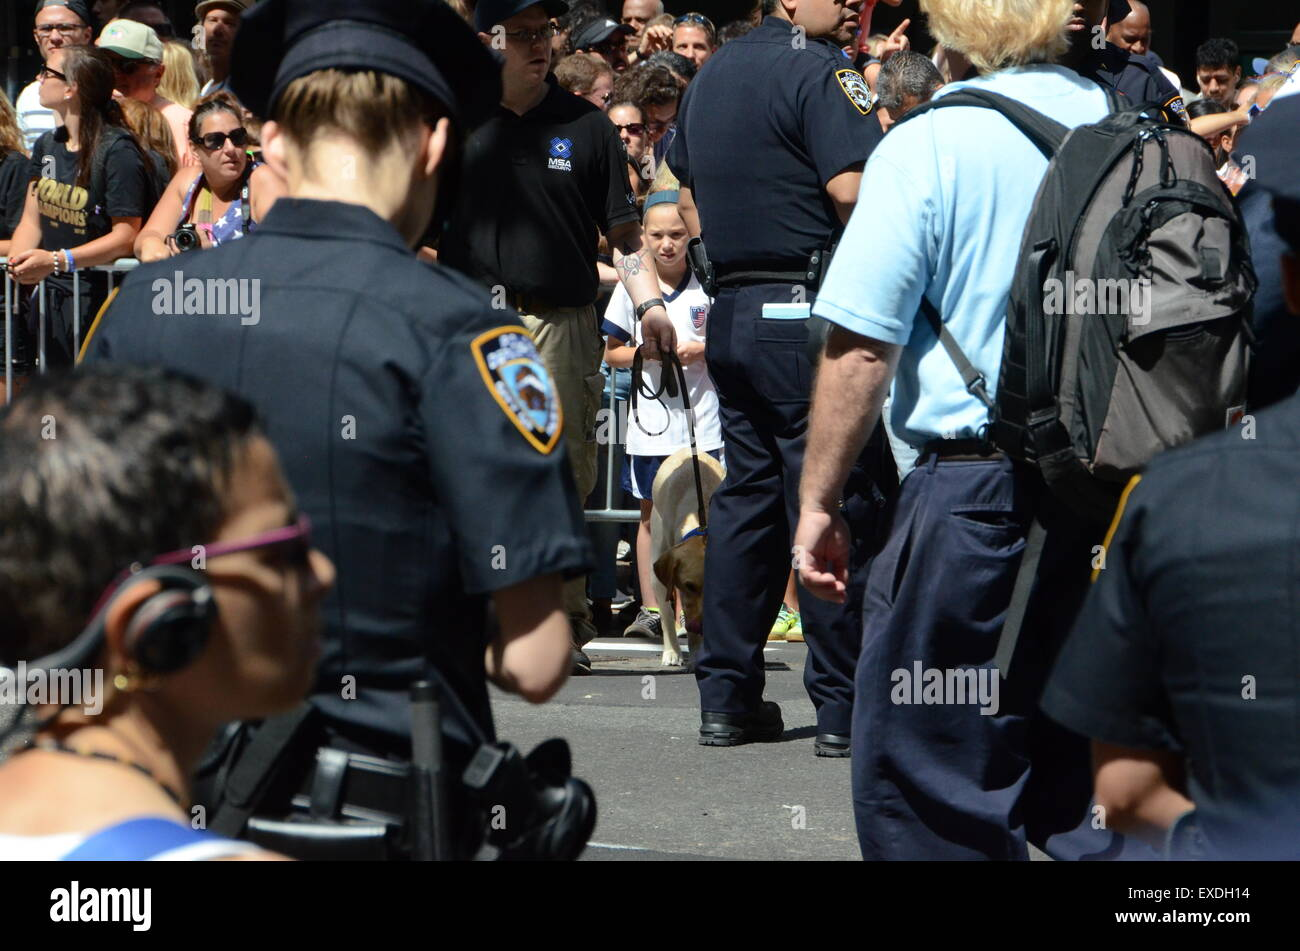 nypd cops guns and belts - Stock Image